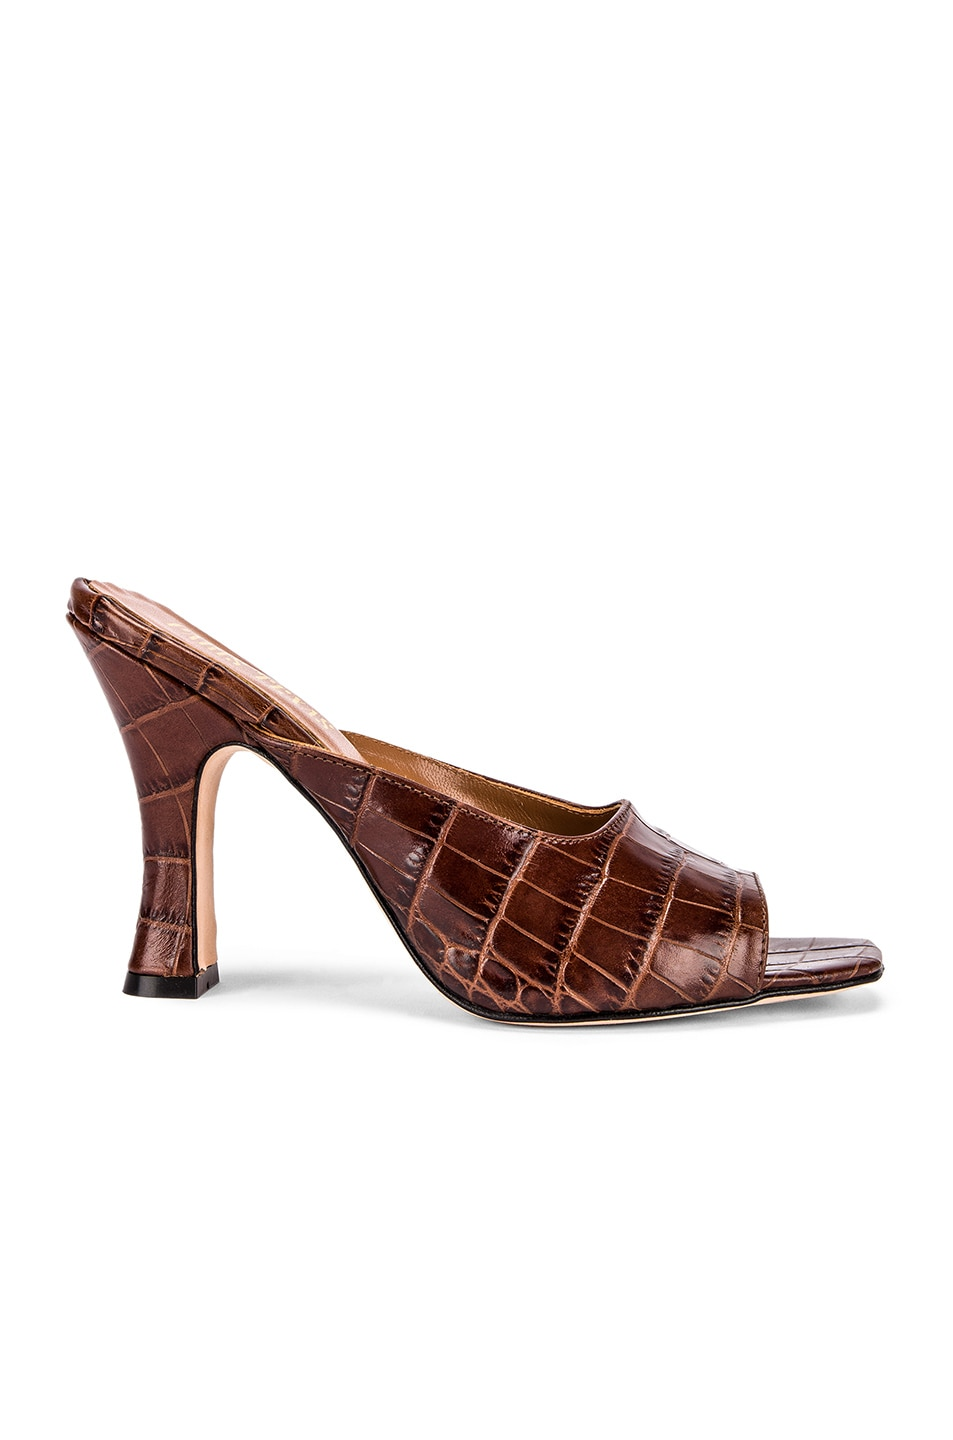 Image 1 of Paris Texas Moc Croco Square Toe Mule in Brown